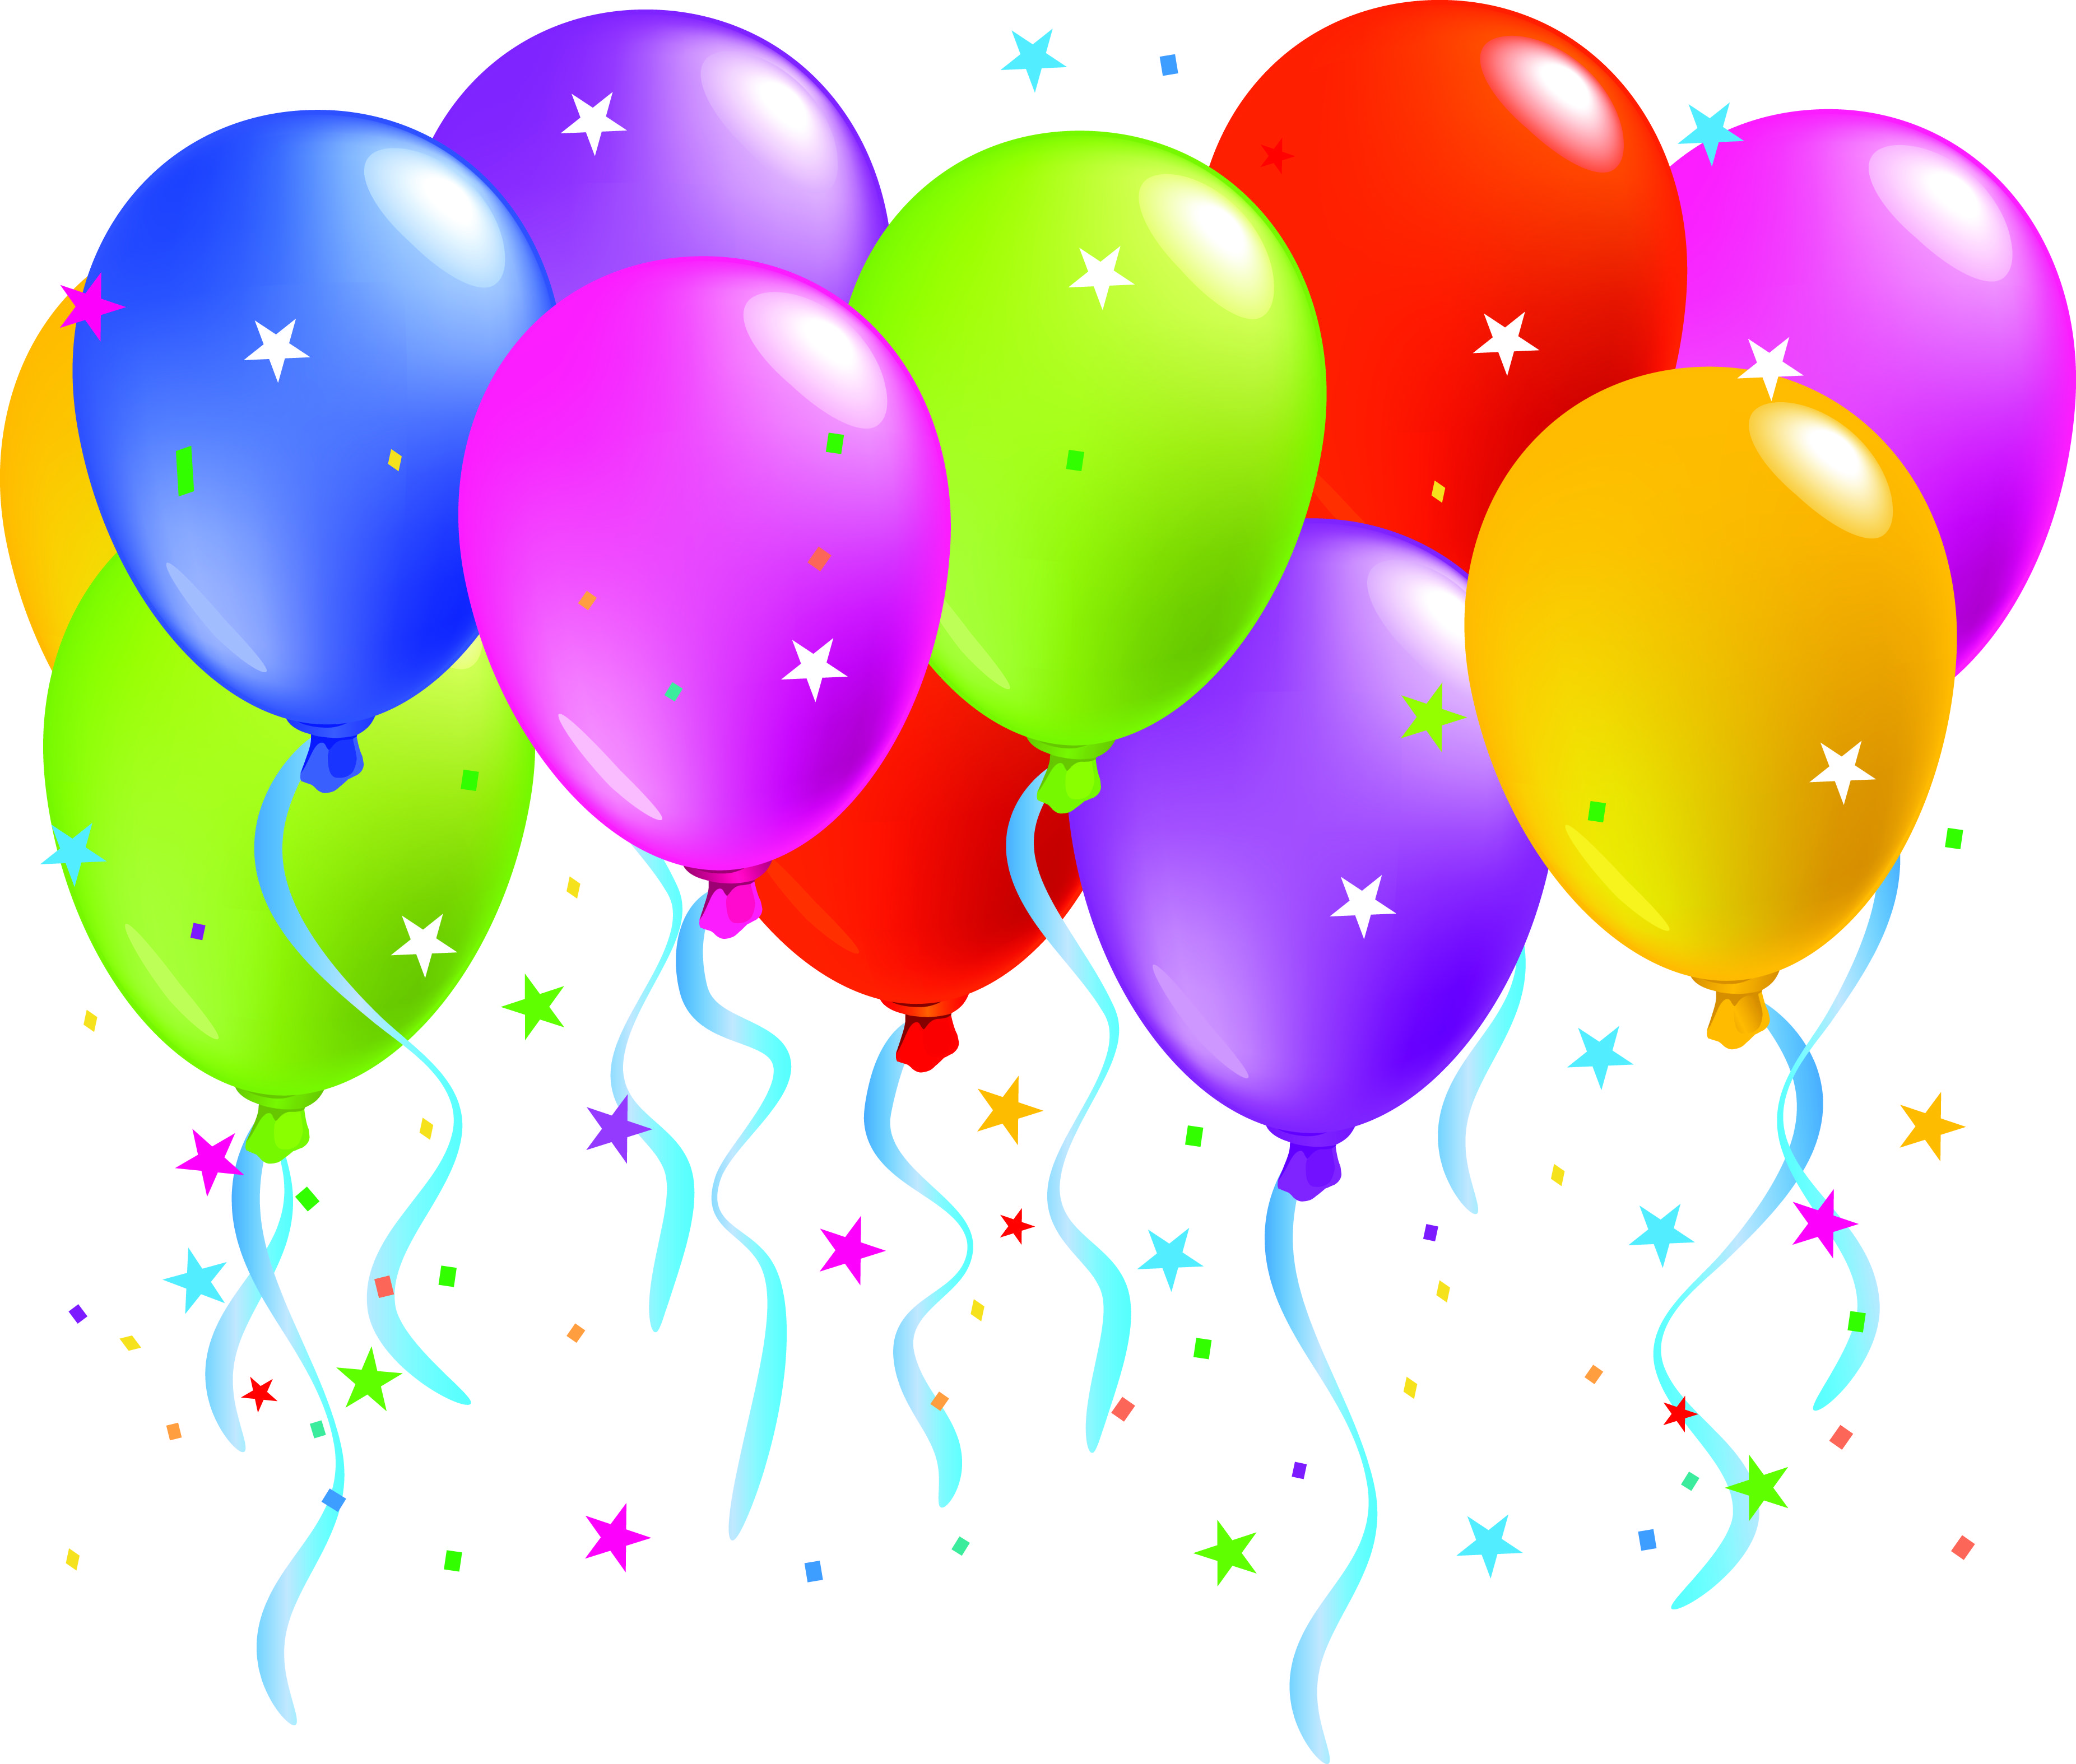 medium resolution of images of balloons for birthday balloons